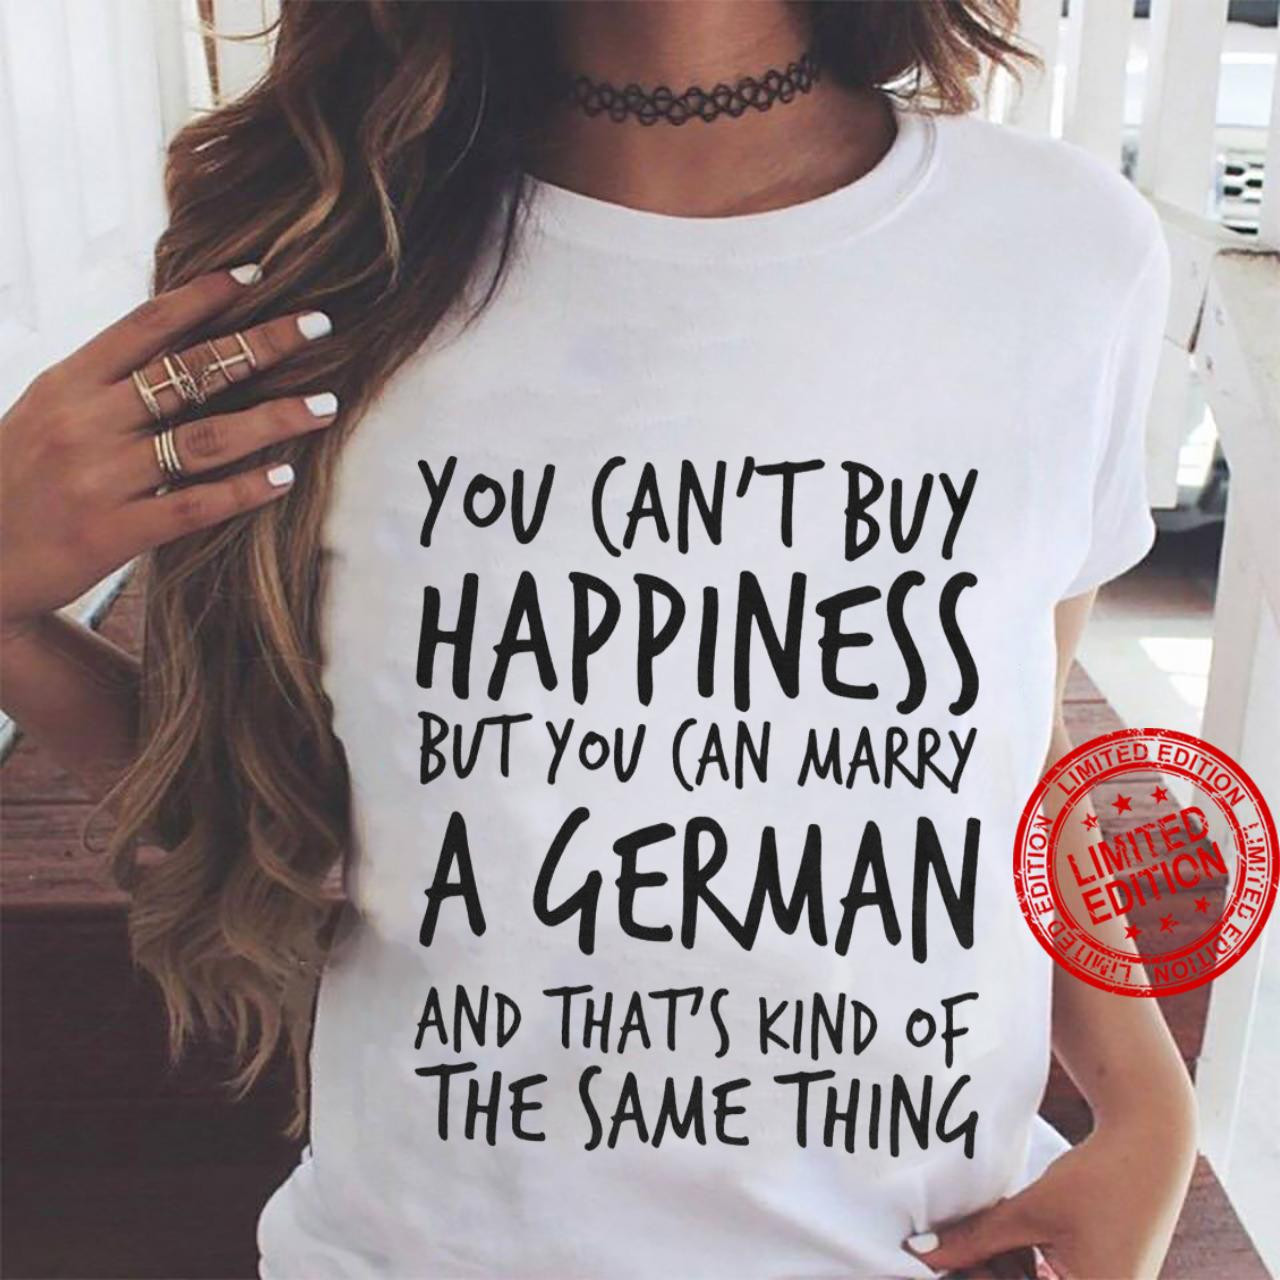 You Can't Buy Happiness But You Can Marry A German And That's Kind Of The Same Thing Shirt ladies tee